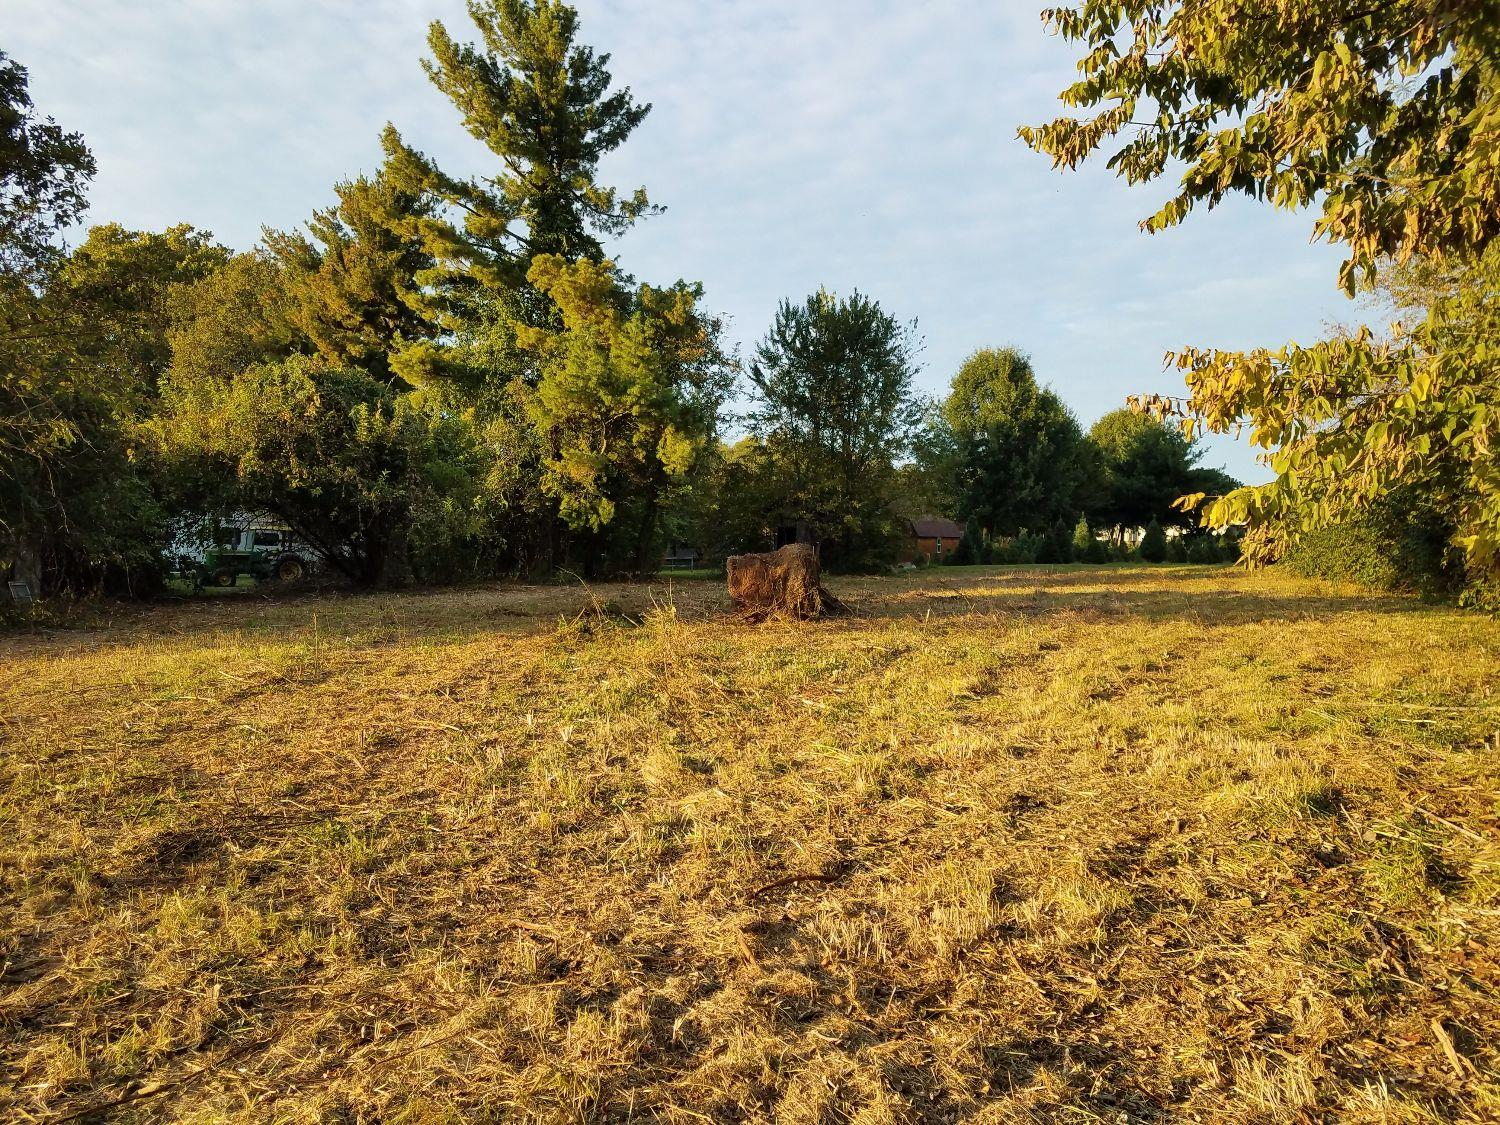 LOOK%20at%20this%20fantastic%20potential%20building%20site%20located%20in%20eastern%20Fayette.%20One%20acre(+-)%20located%20inside%20urban%20service%20area%20minutes%20from%20Hamburg%20shopping.%20surrounded%20by%20large%2010+%20acre%20lots.%20currently%20has%202%20bedroom%201%20bath%201950s%20home%20with%20all%20hardwood%20floors%20and%20plaster%20walls.%20Rent%20until%20you%20build.%20Wide%20deep%20lot%20is%20gently%20sloped%20for%20perfect%20drainage%20and%20the%20elevation%20above%20the%20roadway%20provides%20privacy%20and%20good%20drainage%20for%20a%20basement.%20Mature%20trees%20envelop%20the%20perimeter.%20Two%20car%20detached%20garage%20of%20block%20construction%20can%20be%20serviced%20to%20provide%20security%20and%20storage%20for%20construction%20items.%20Property%20is%20bordered%20to%20the%20north%20by%20Barkers%20Christmas%20tree%20farm,%20and%20to%20the%20east%20and%20south%20by%20open%20hay%20fields%20of%20a%20farm.%20Overgrown%20portions%20being%20cleared%20now%20so%20pictures%20will%20be%20available%20soon.%20Builder%20inquiries%20welcome.%20Great%20location%20and%20size%20for%20a%20Luxury%20home.%20Property%20is%20adjacent%20to%20Todds%20Station.%20Septic,%20but%20sewer%20may%20be%20available,%20as%20pressure%20line%20is%20accessible.%20No%20HOA%20fees,%20HOA%20restrictions.%20FREEDOM!